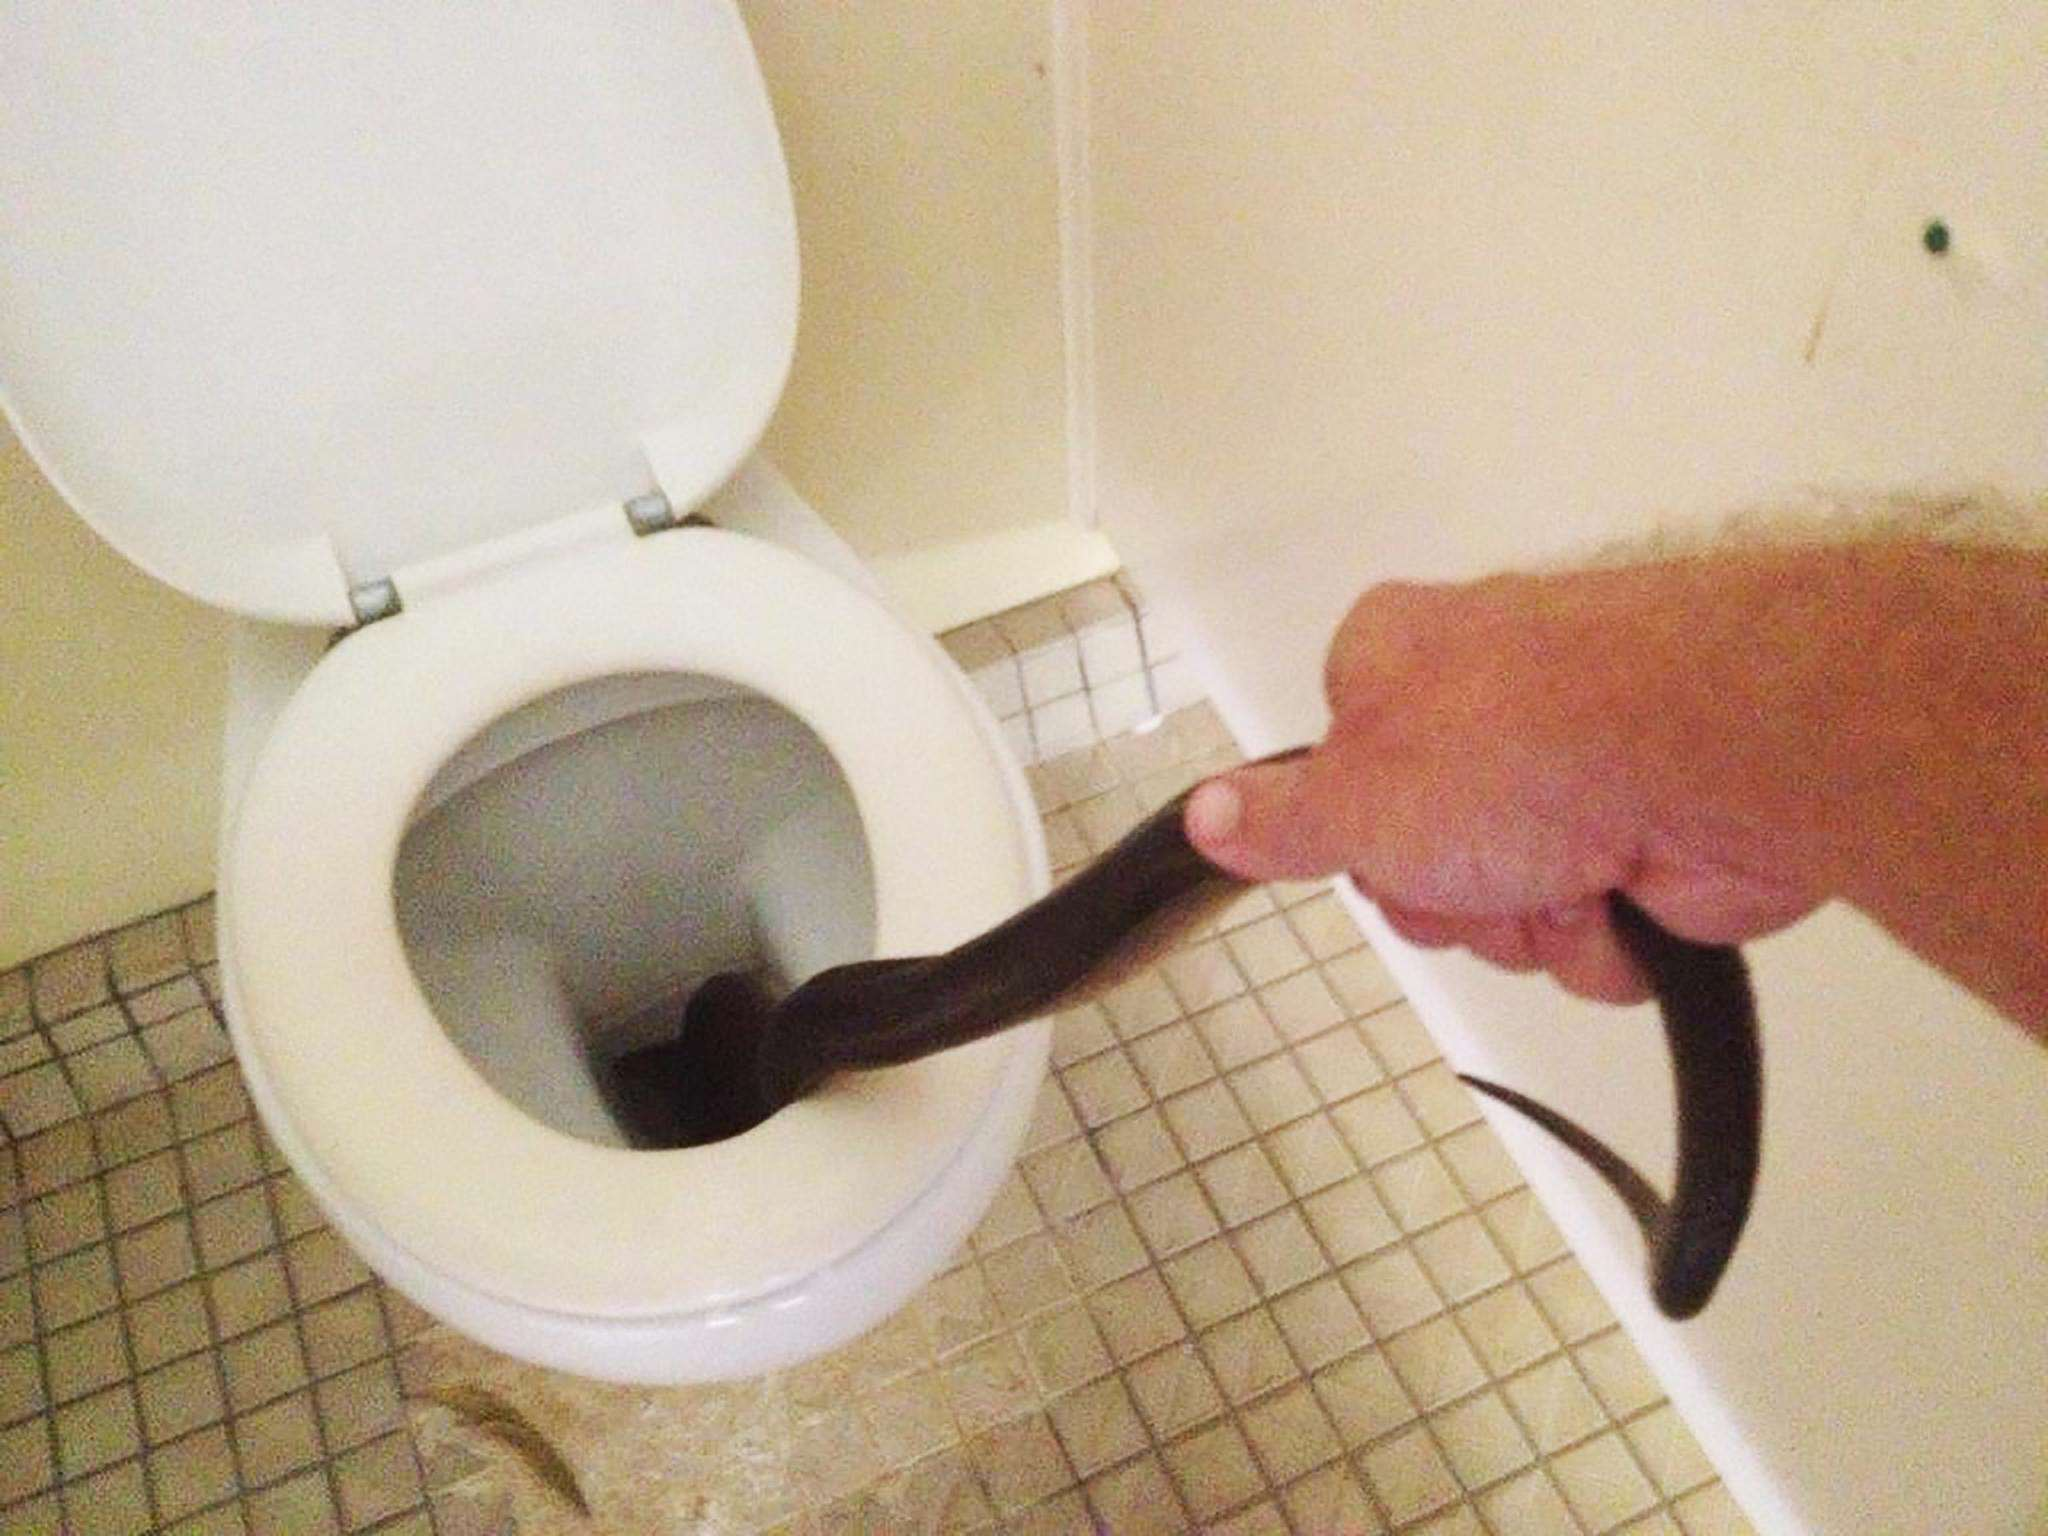 NOPE: These Photos Will Put You Off Using Toilet Forever snake2